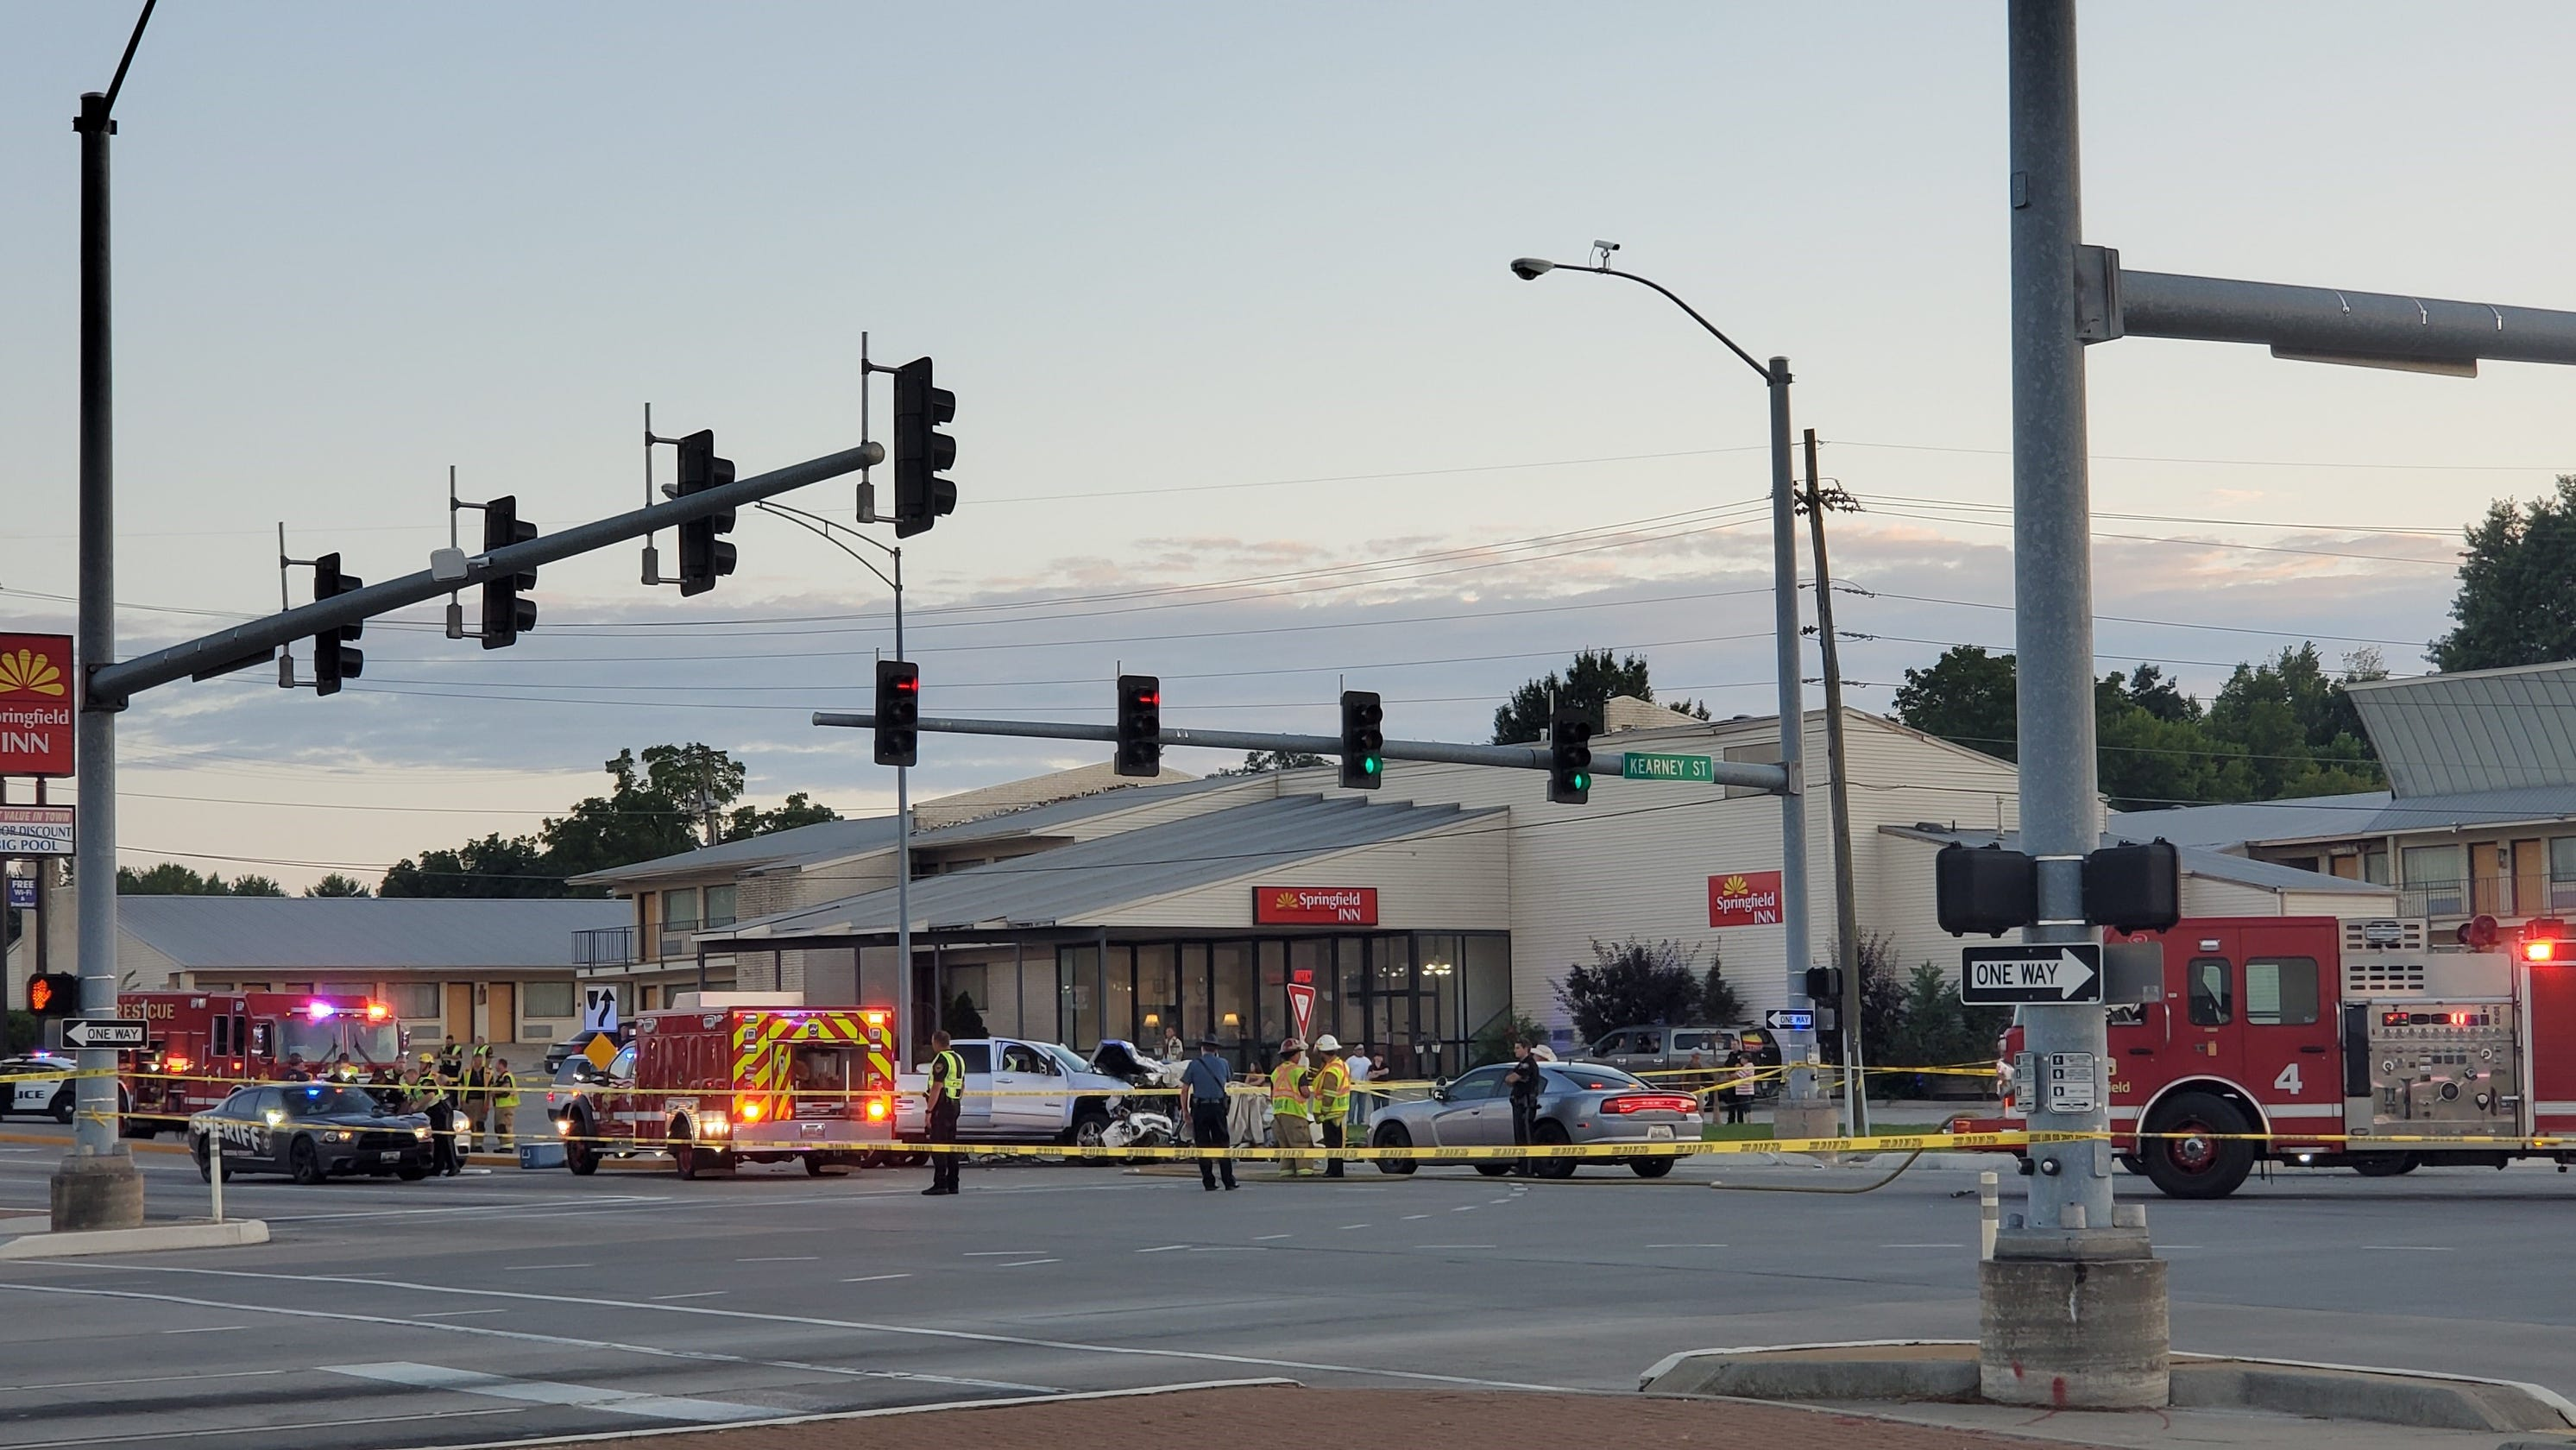 At least 3 dead in crash at Kearney and Glenstone